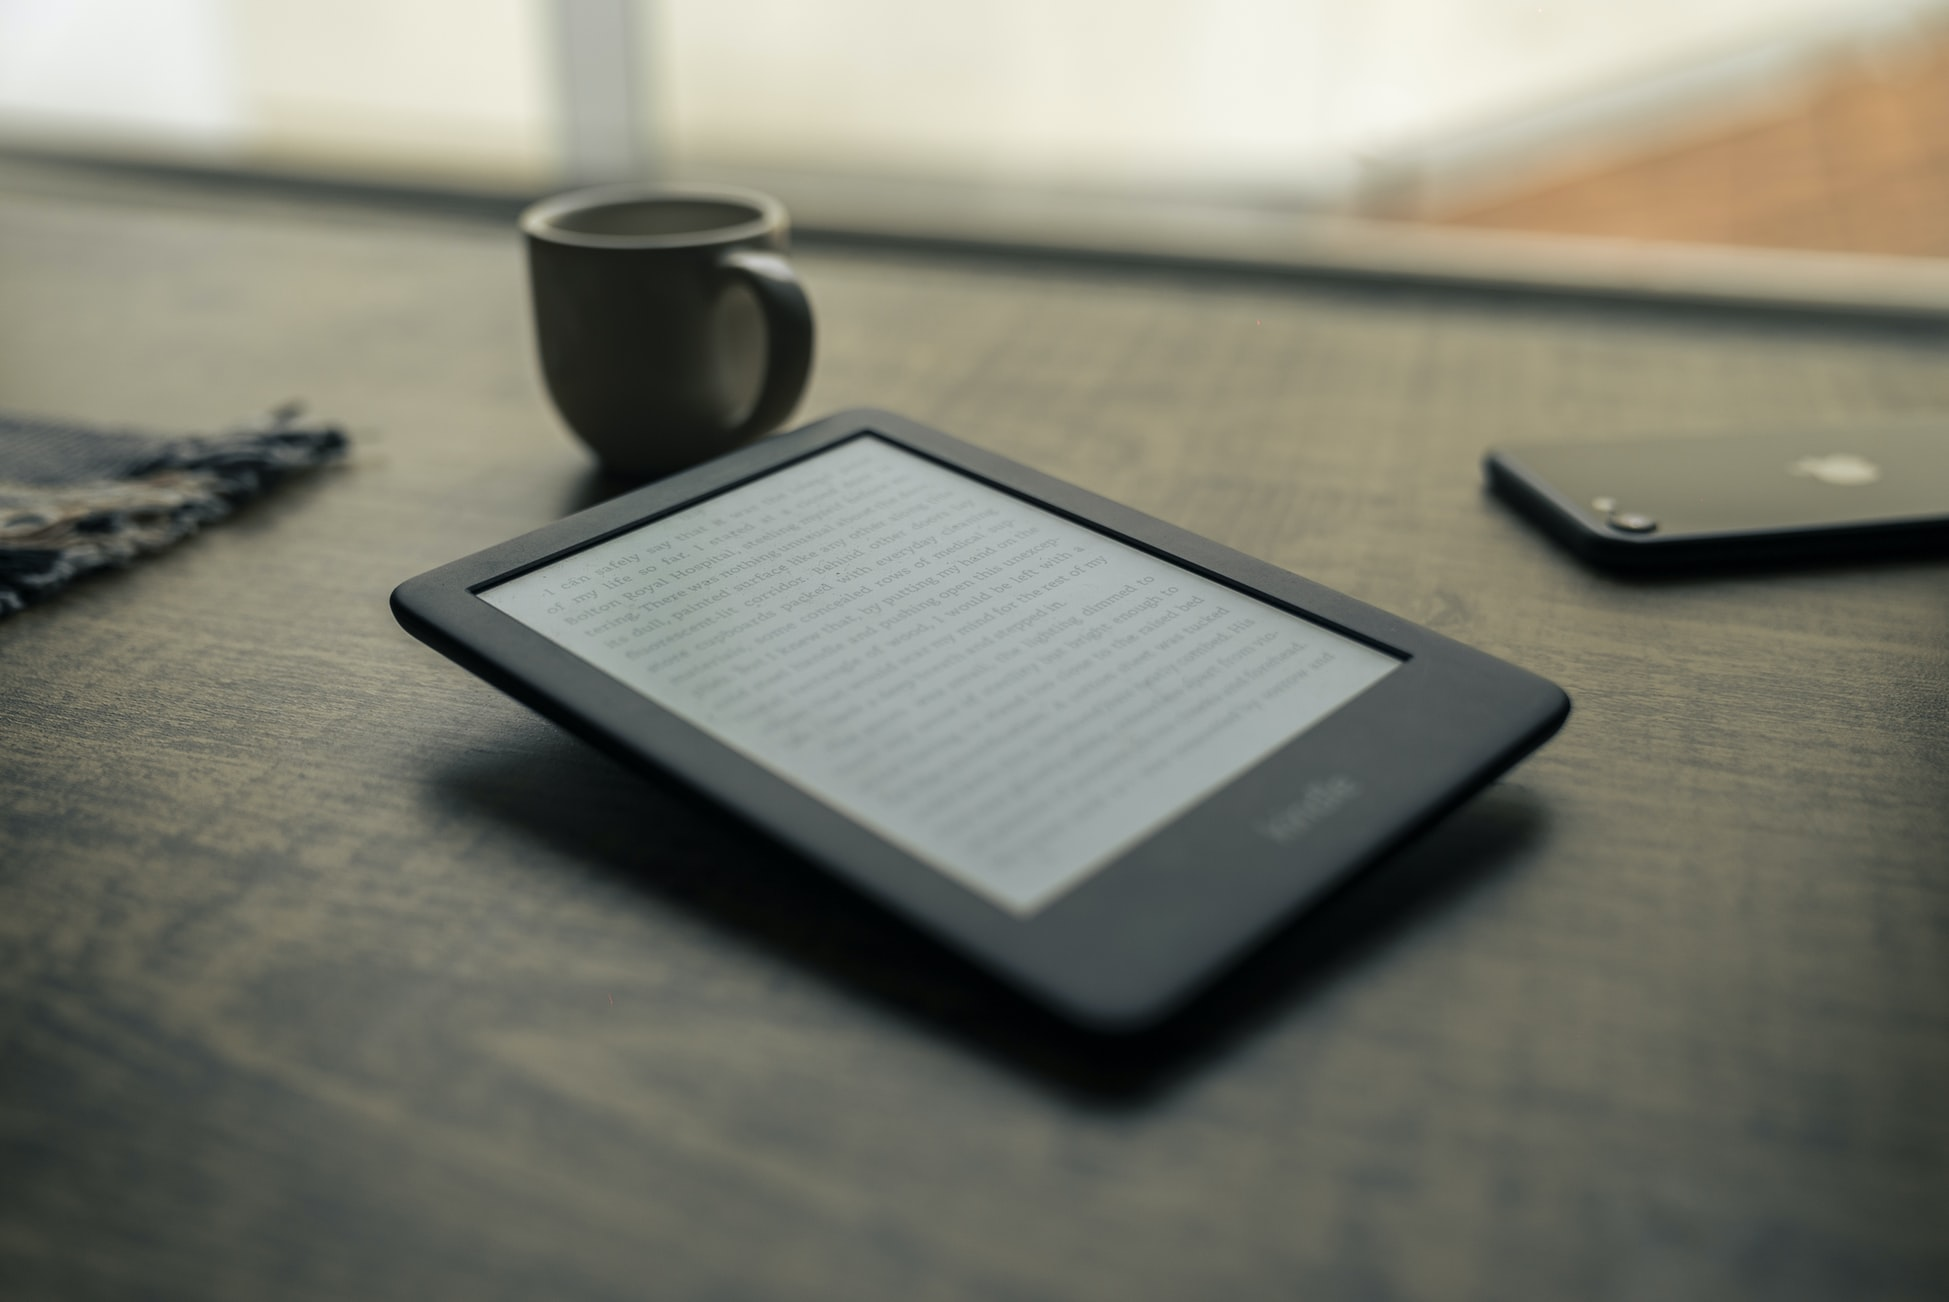 Black kindle next to iPhone